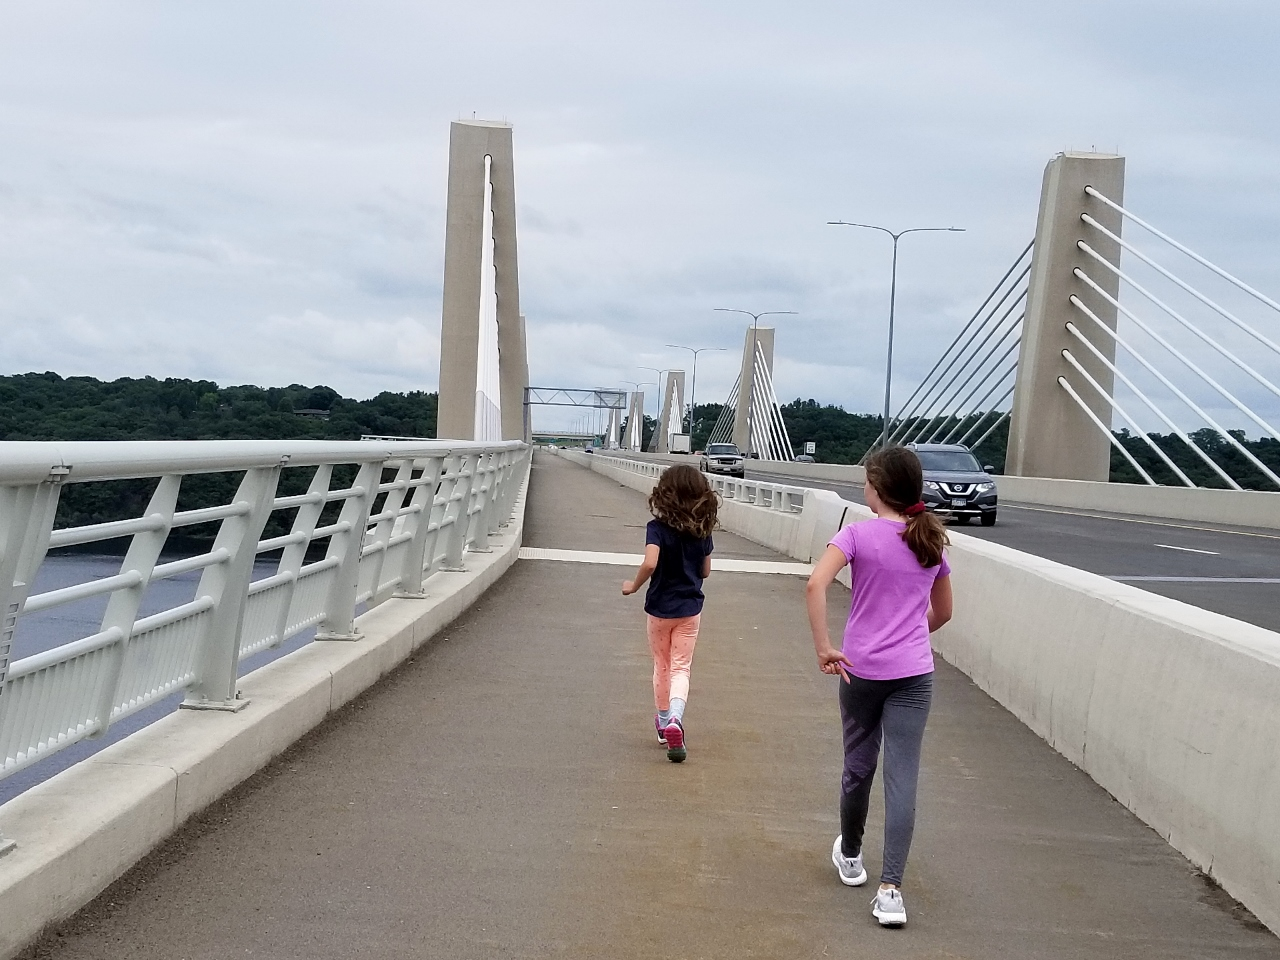 The walking lane on the bridge